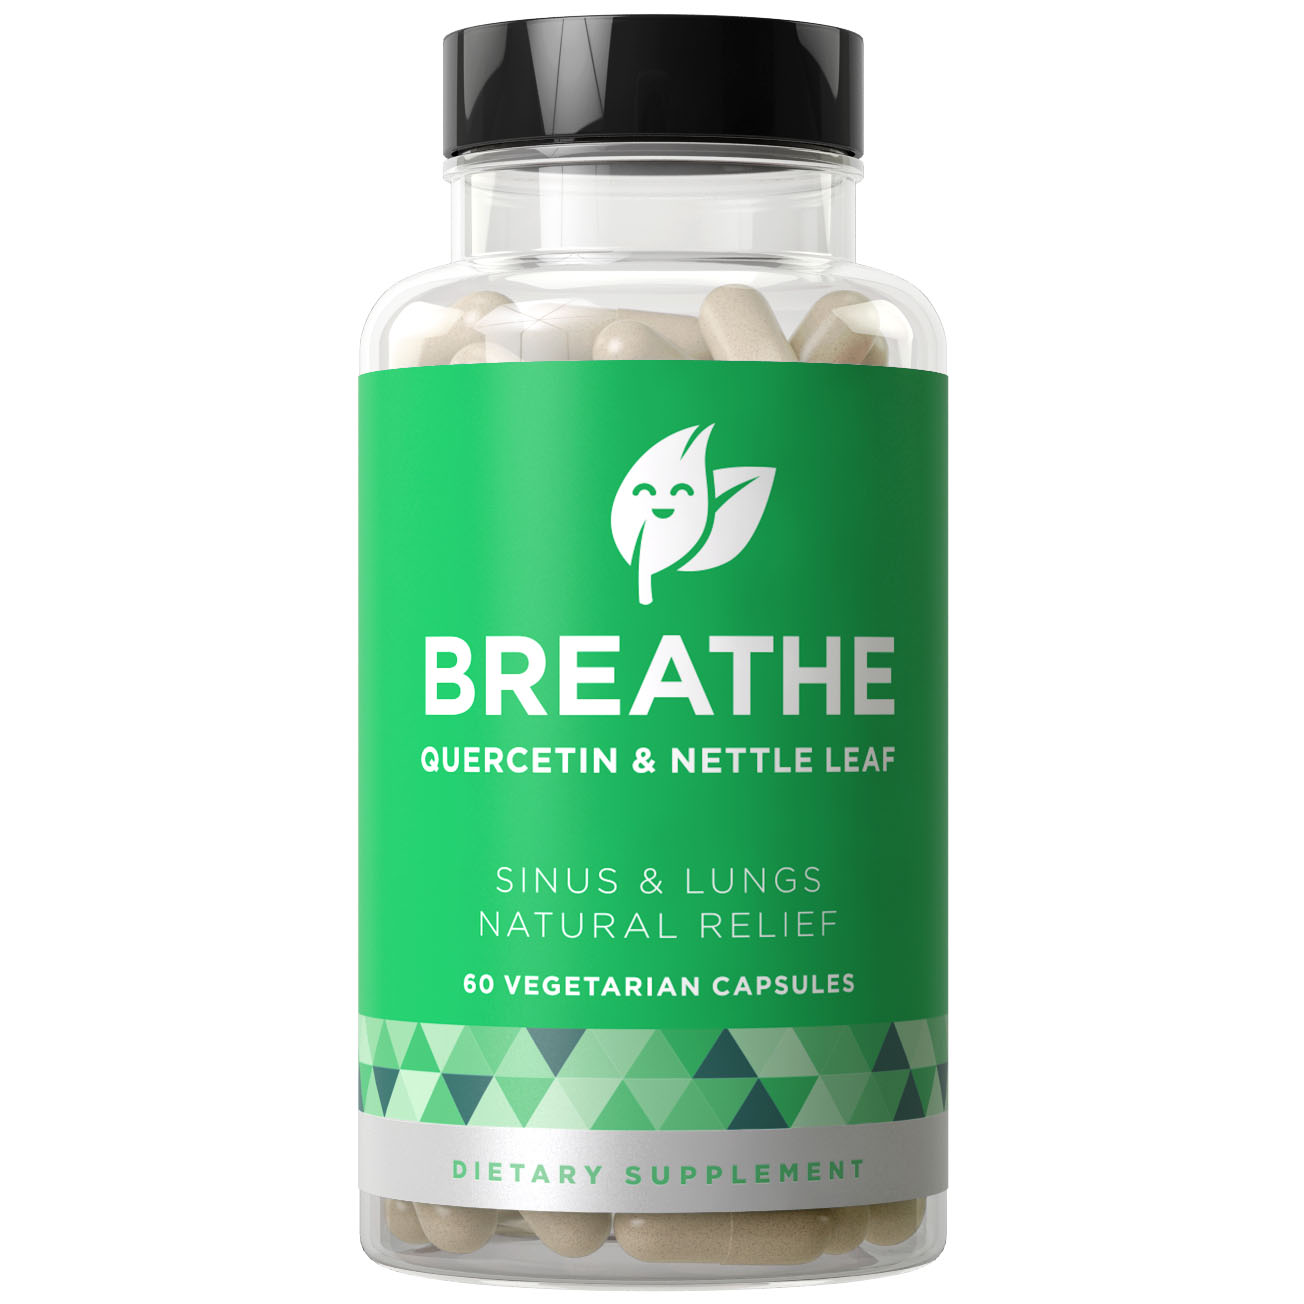 BREATHE Sinus & Lungs Breathing - Fact-Acting Strength, Seasonal Protection, Nasal Congestion, Bronchial Wellness - Non-Drowsy Formula with Quercetin & Nettle Leaf - 60 Vegetarian Soft Capsules